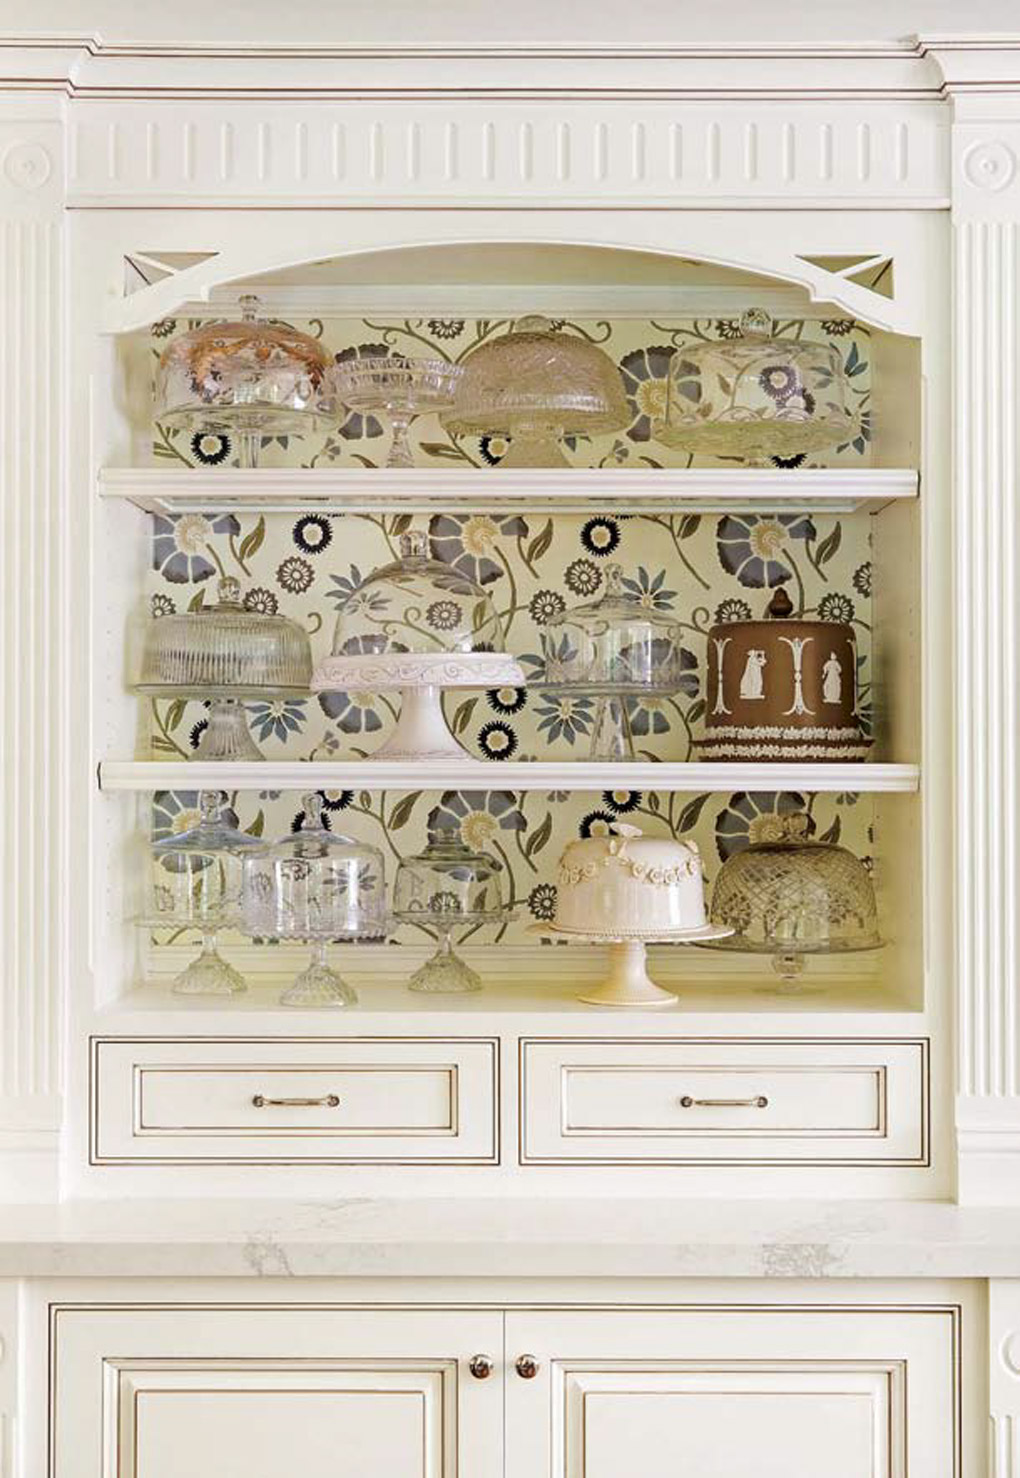 Cream colored accent cabinets with a custom display case filled with a collection of cake plates.